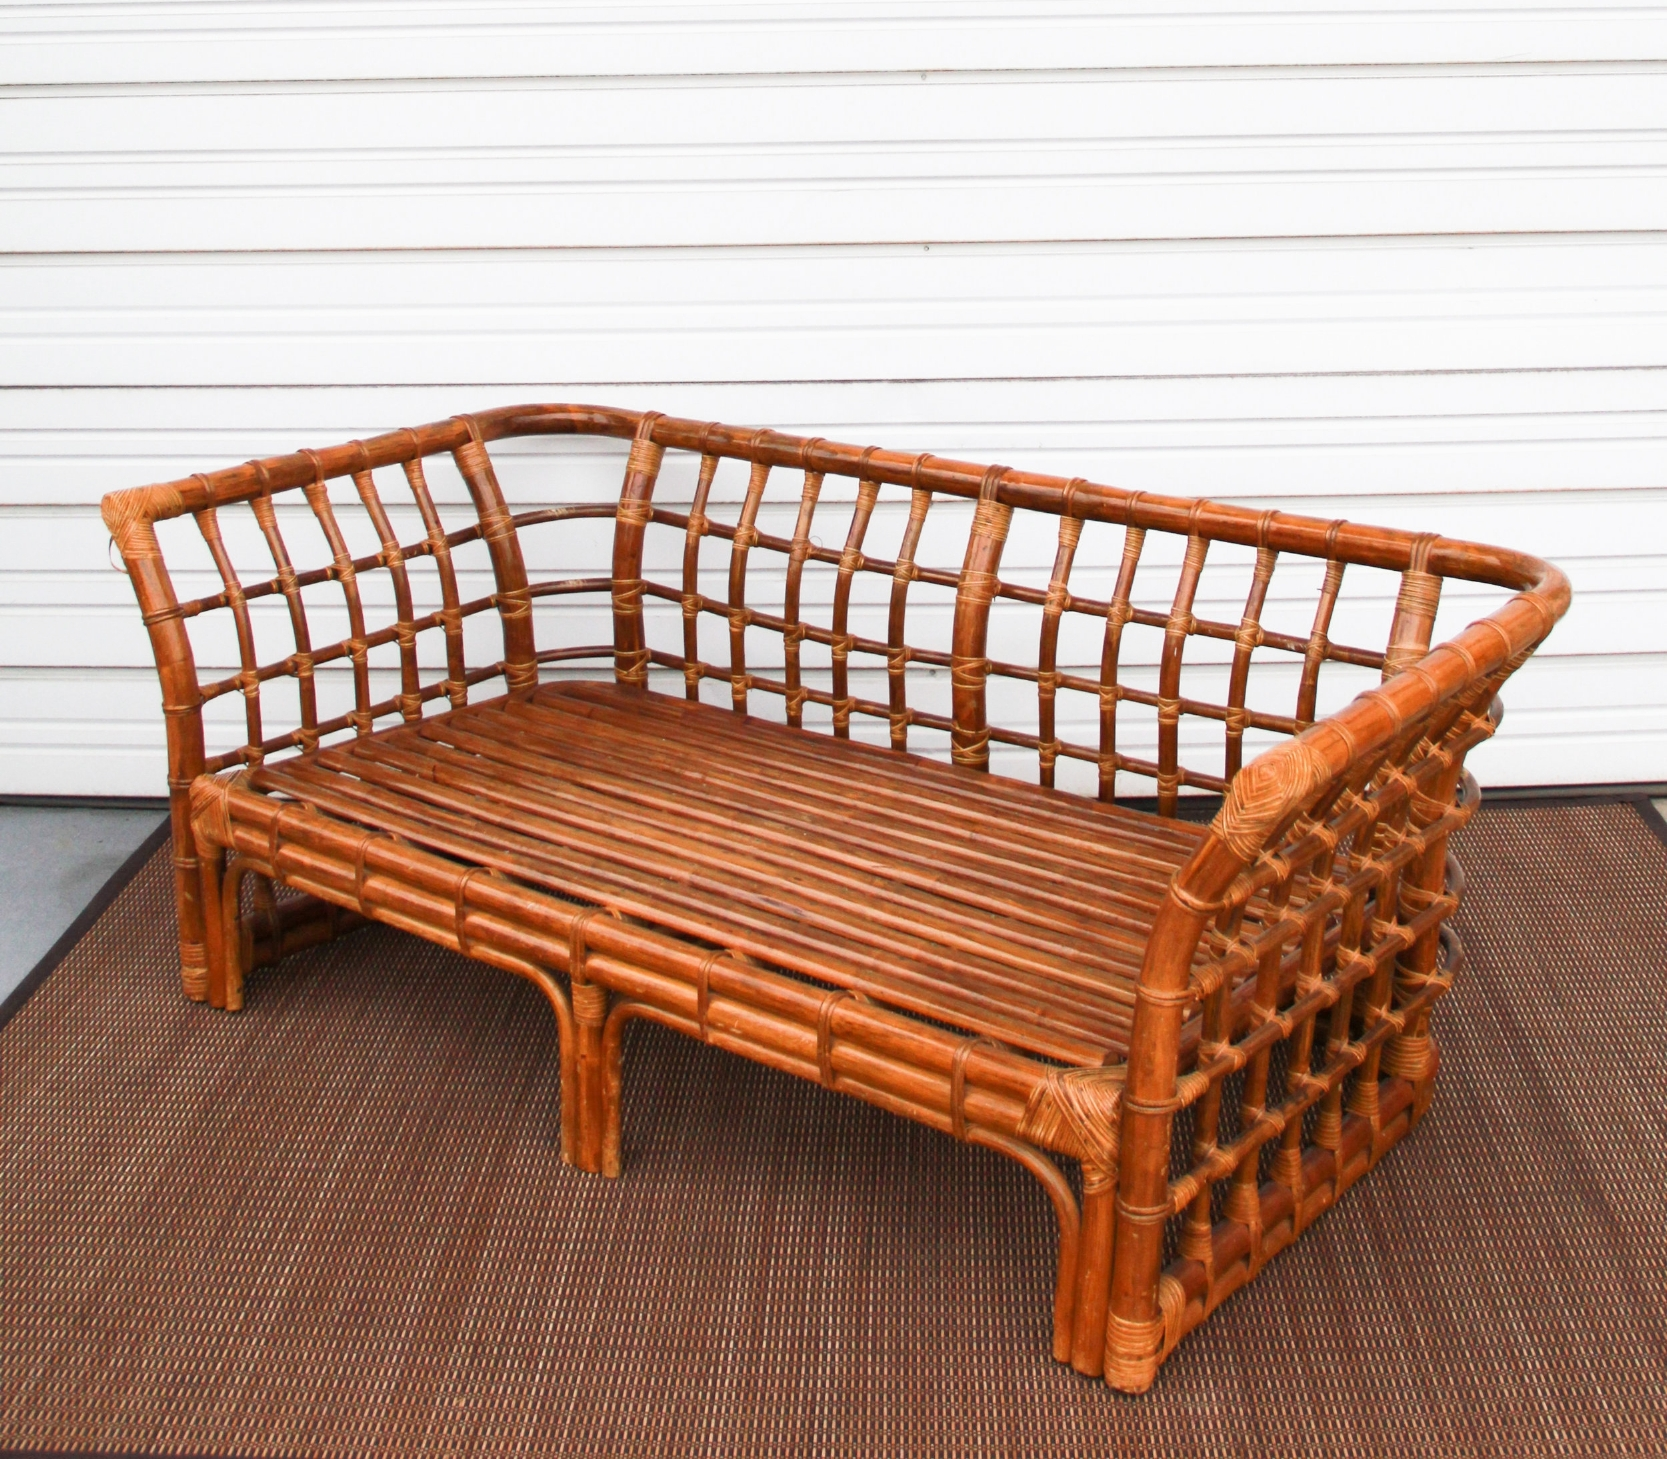 Bamboo Loveseat + Chair